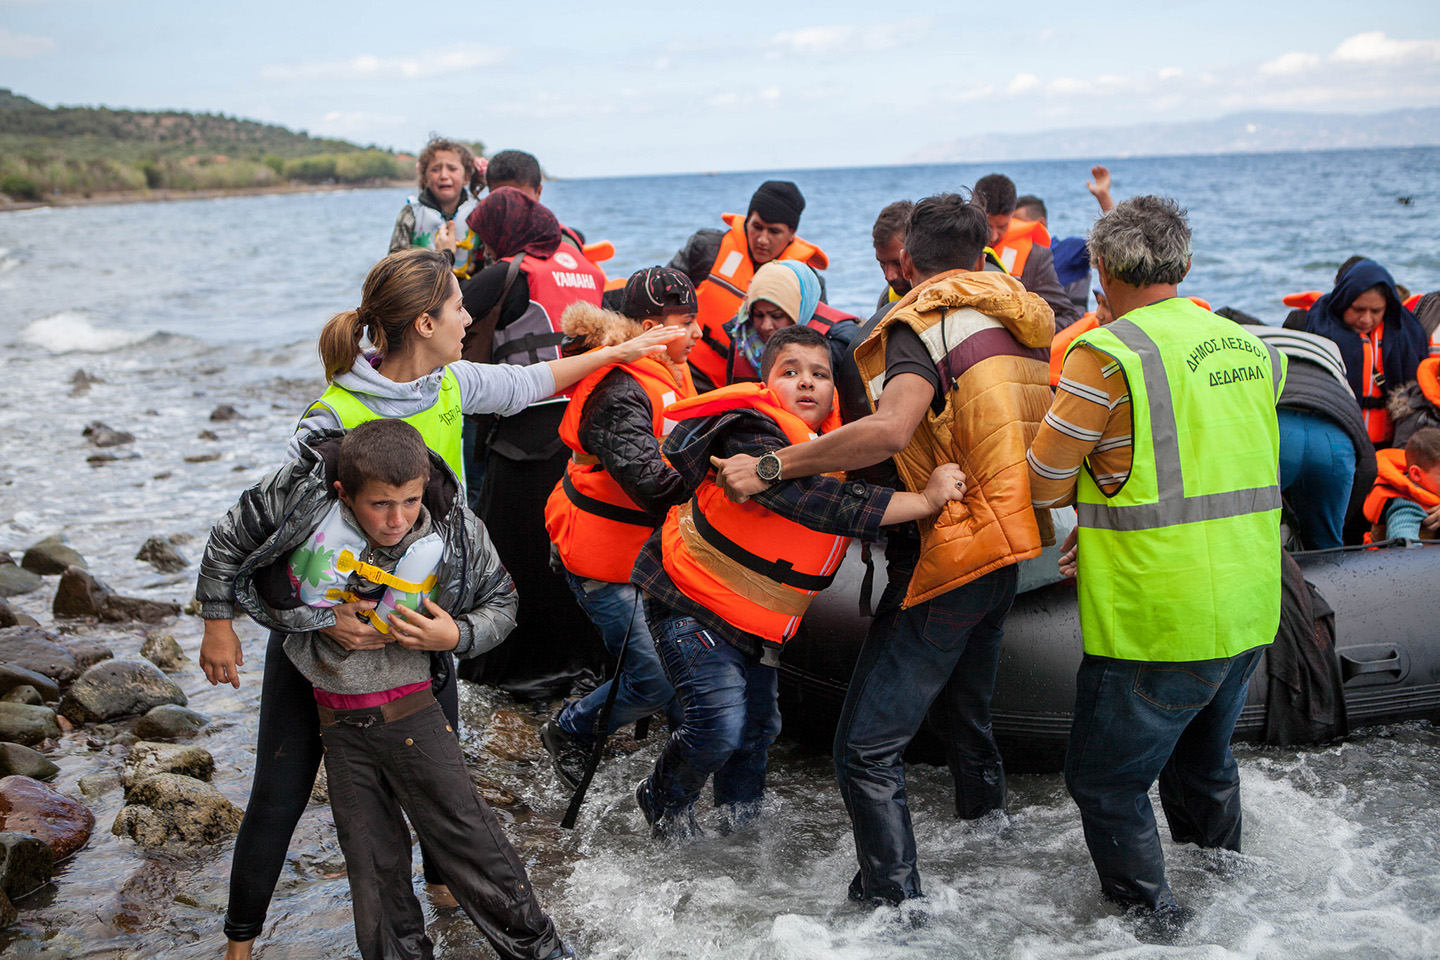 WEB-EUROPE-REFUGEE-CRISIS-LESBOS-GREECE-SEA-Ben White-CAFOD, October 2015-CC